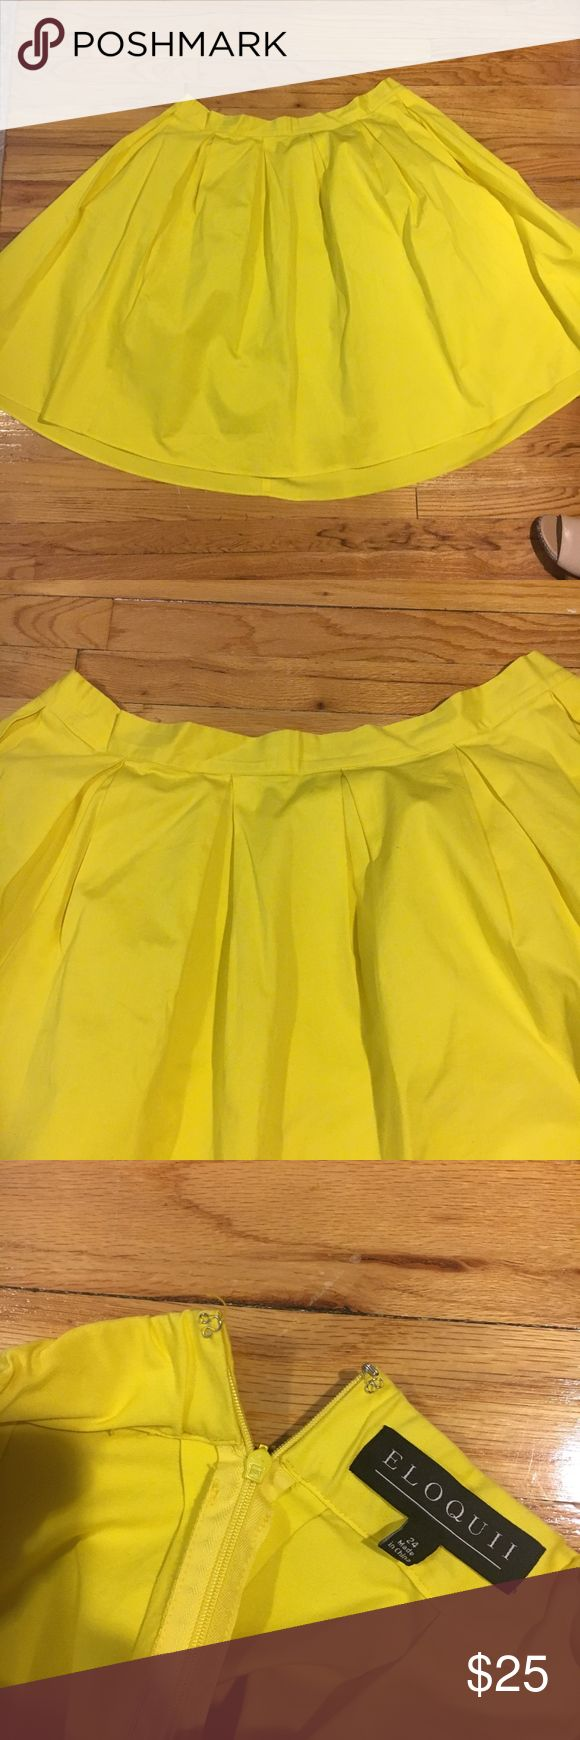 Eloquii Yellow Pleated Midi Skirt Lightly used Eloquii Pleated Skirt. Lemon Yellow color. Size 24. Hidden elastic waist band. Full skirt in cotton twill and is great for layering. Invisible zipper. Box pleats. Does have two small green lines, which are not noticeable from a far. Thread coming off of hook and eye closure. Great for layering with casual pieces and dressing up for night time! Eloquii Skirts Midi